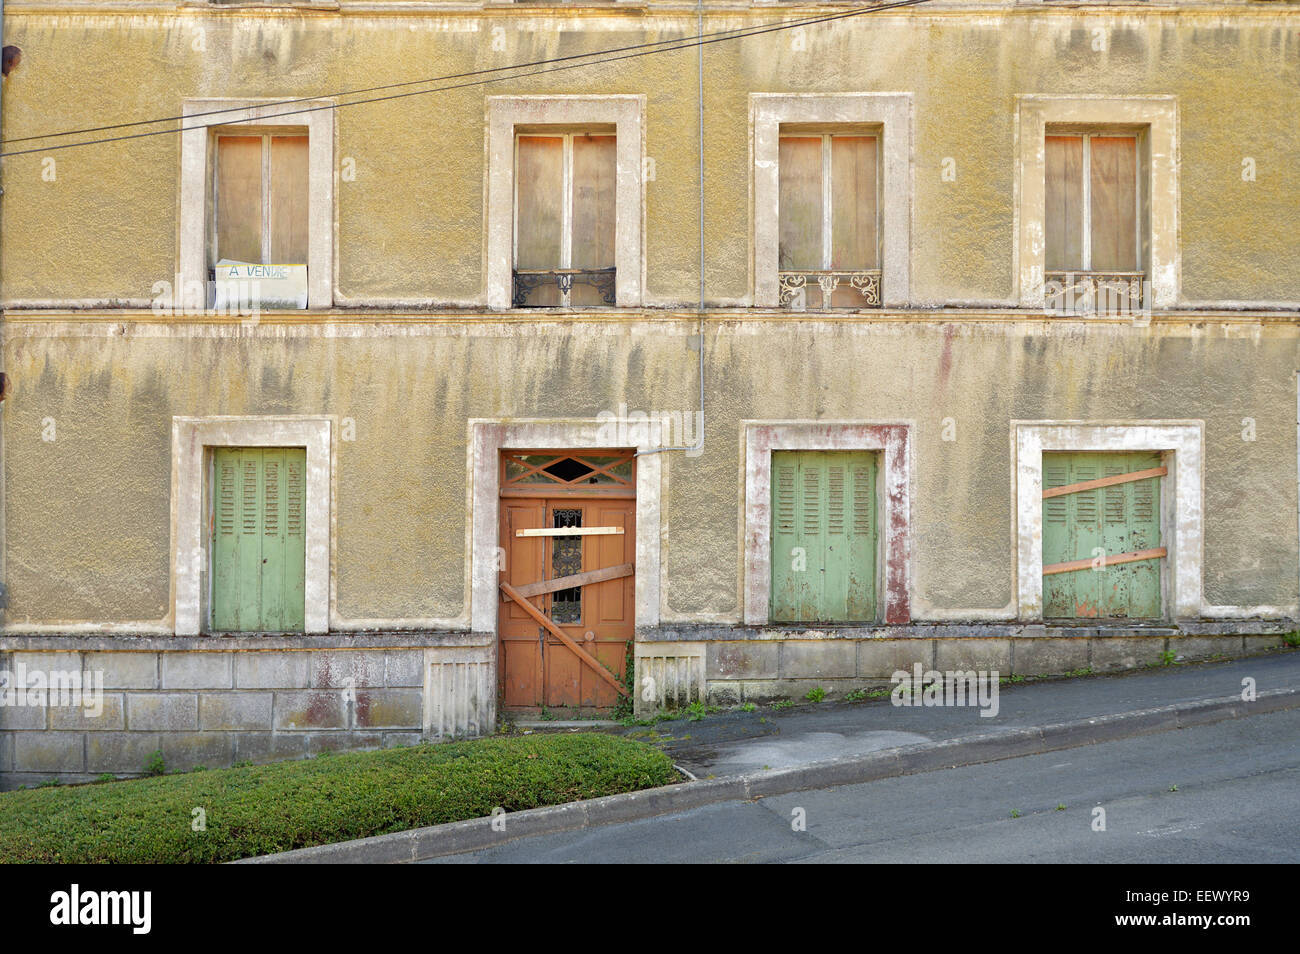 Handwritten sign, A Vendre, for sale on an expired house in the town of Saint Brieuc, Brittany - Stock Image